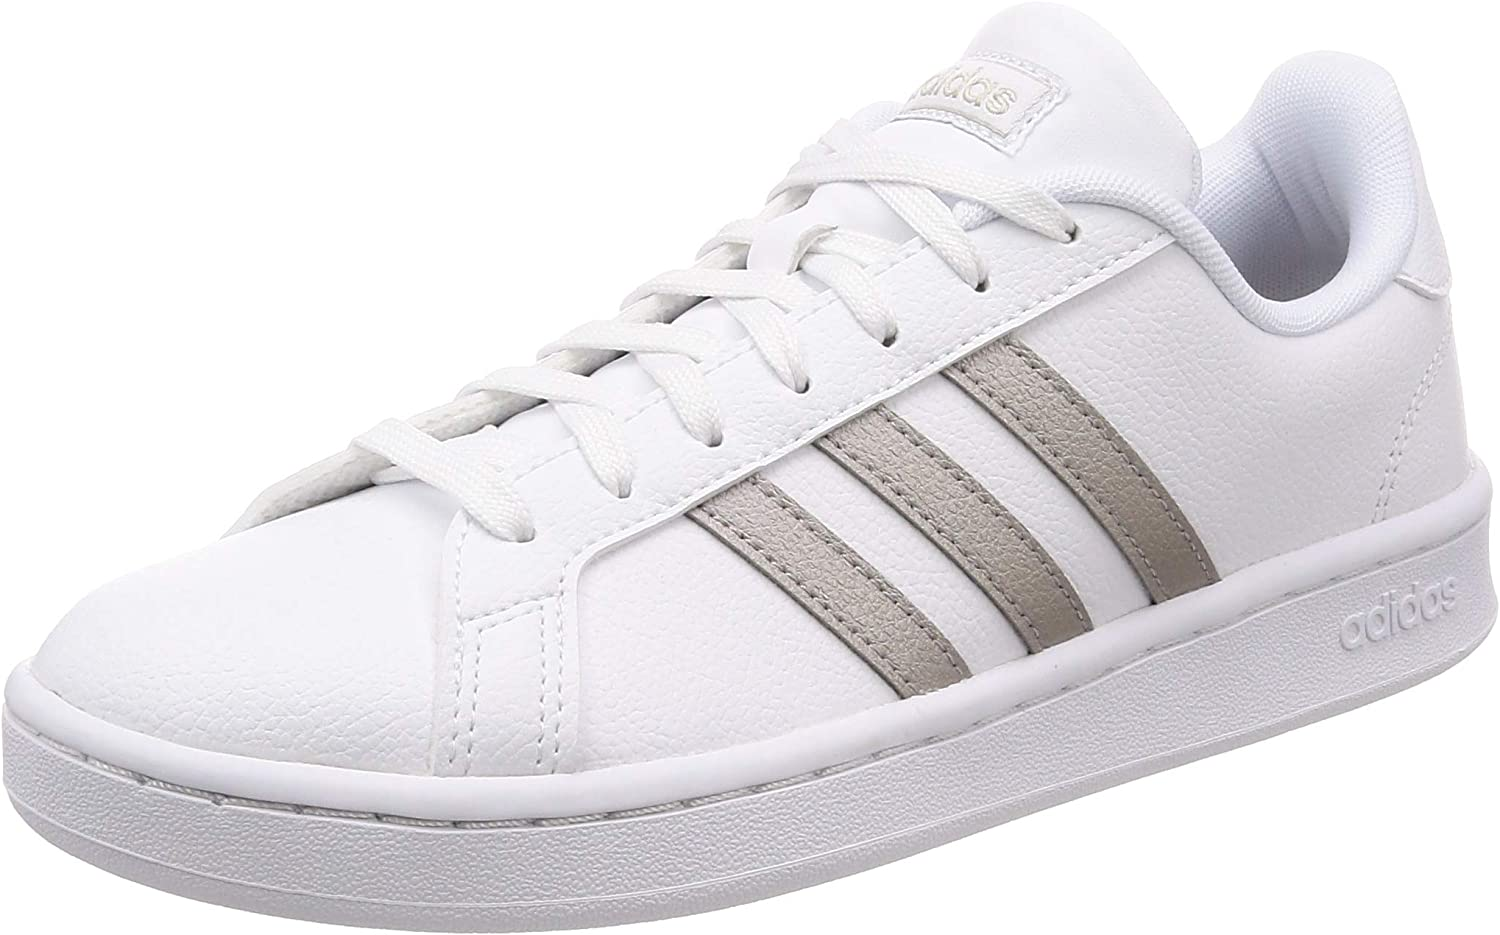 Adidas White Sneaker and Silver Grand Court